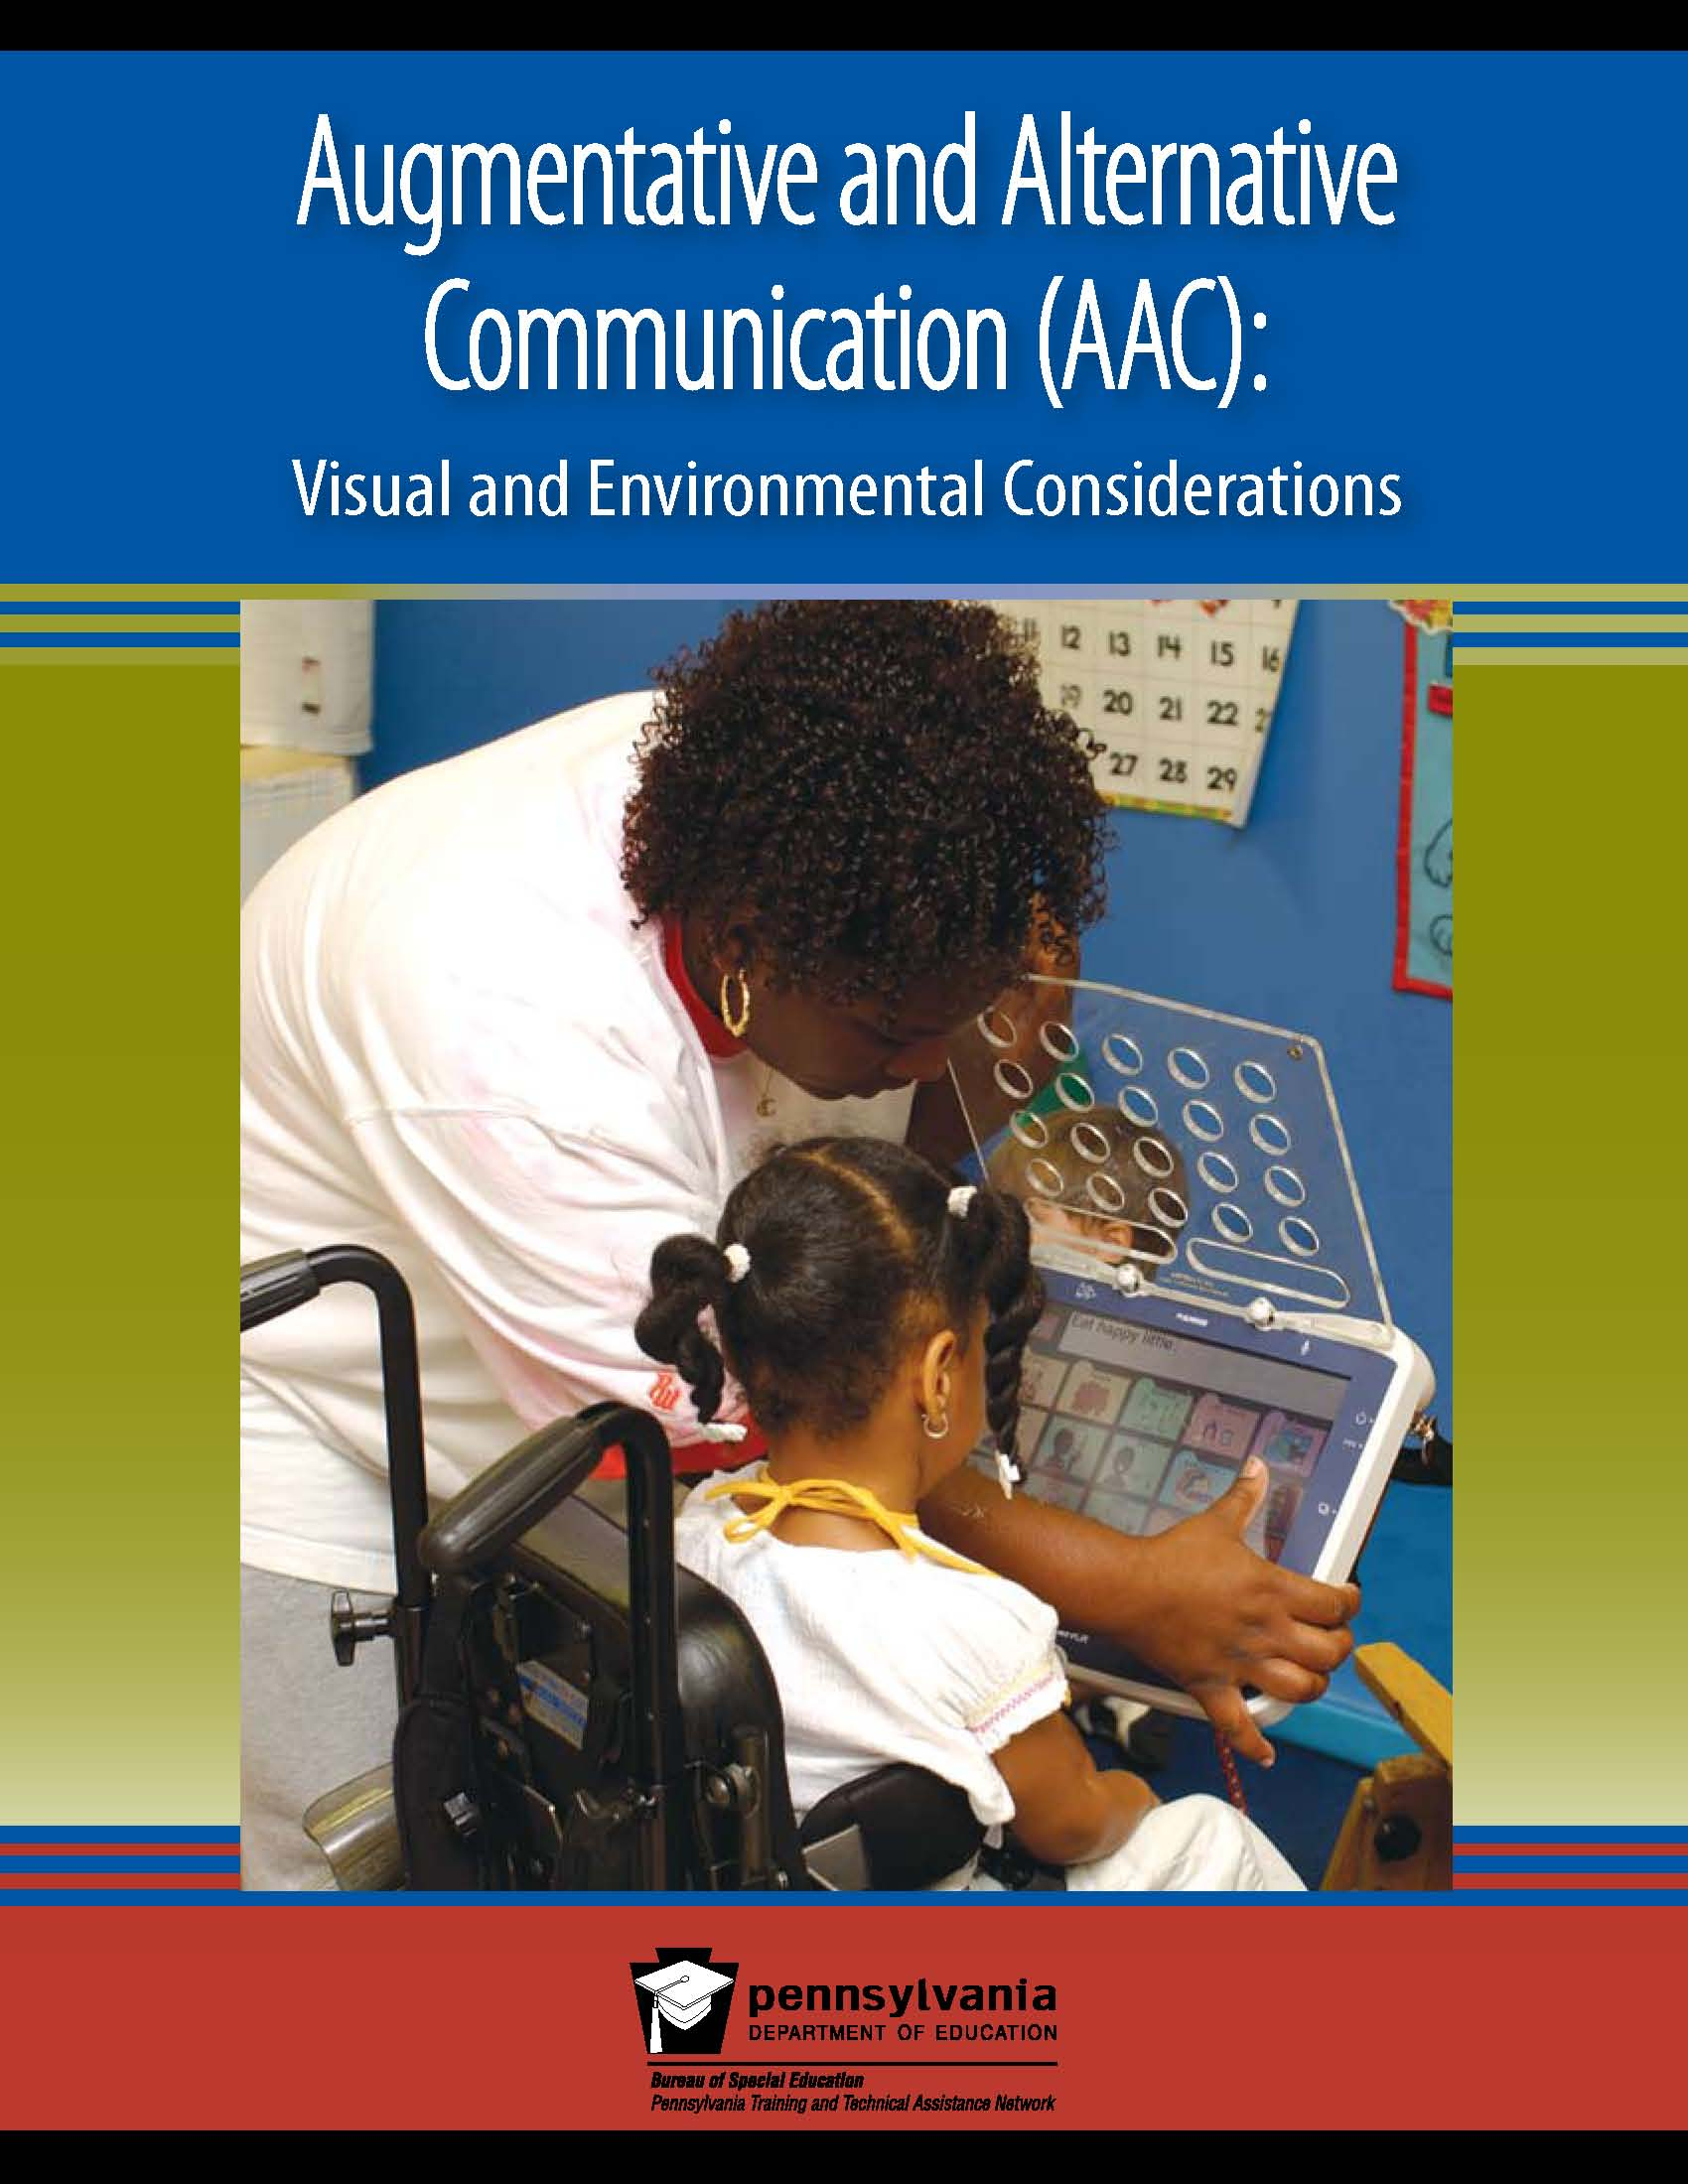 Augmentative and Alternative Communication (AAC): Visual and Environmental Considerations